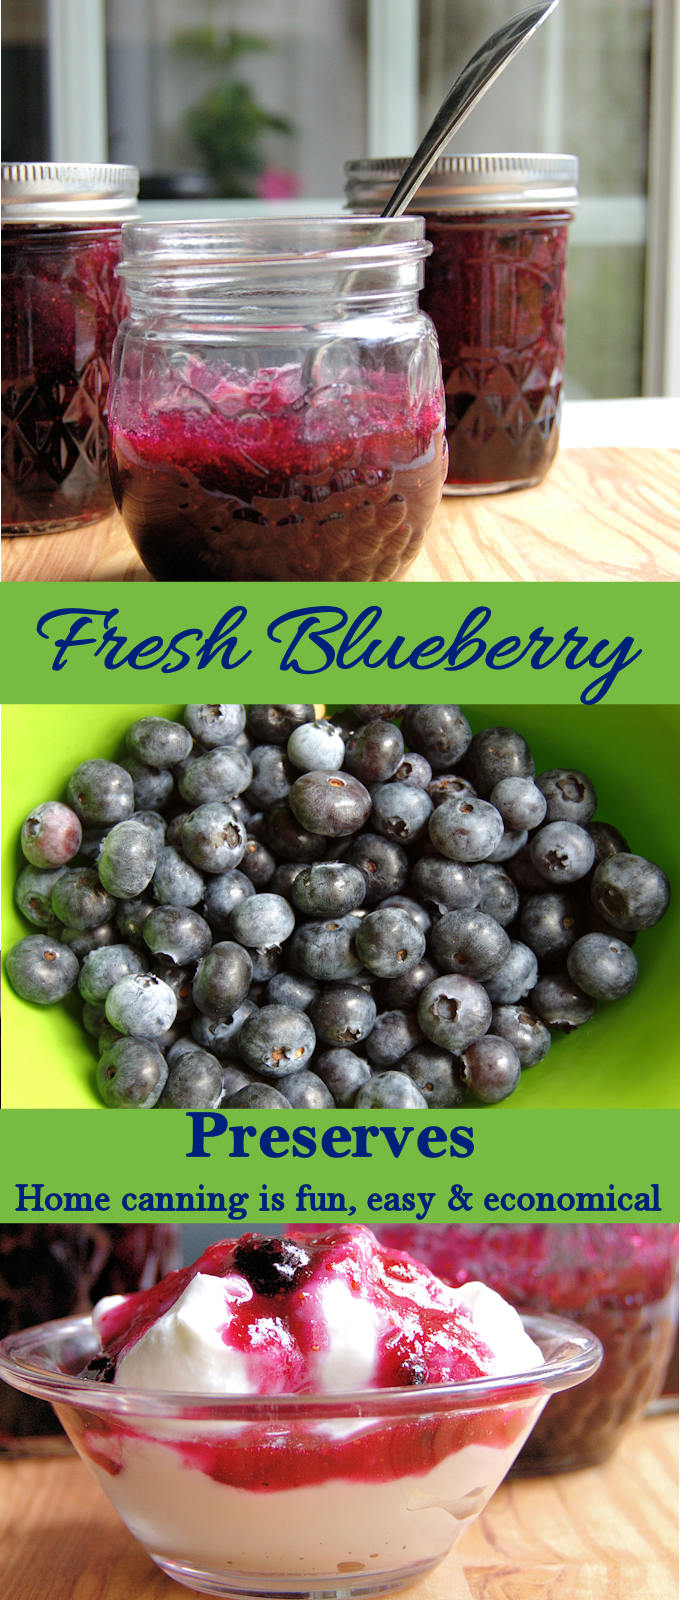 Make blueberry preserves in the summer while the berries are cheap and abundant. Enjoy the preserves all year.